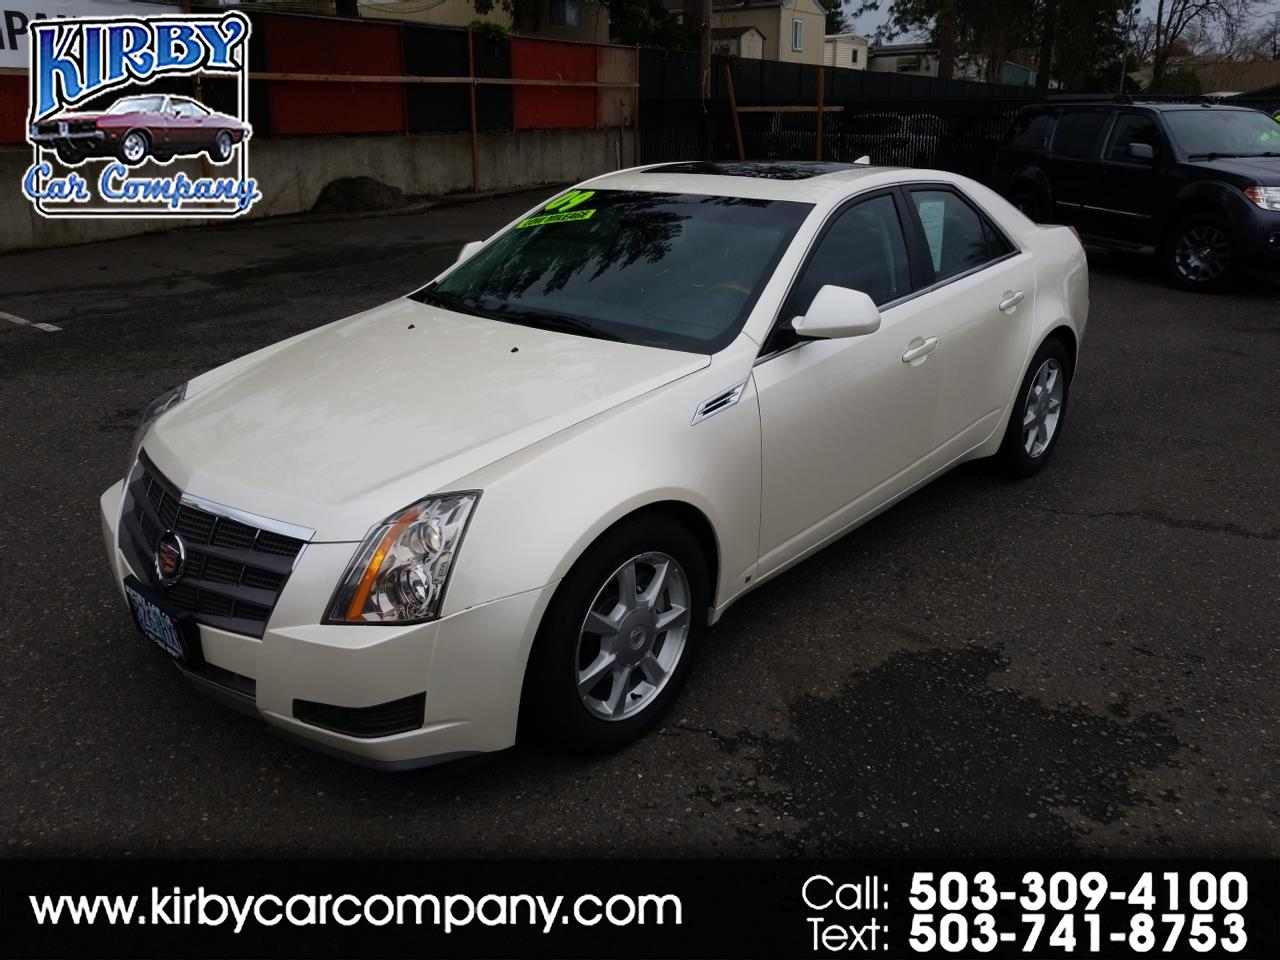 2009 Cadillac CTS 3.6L ALL THE TOYS! 83K MILES! HEATED/COOLED SEATS!